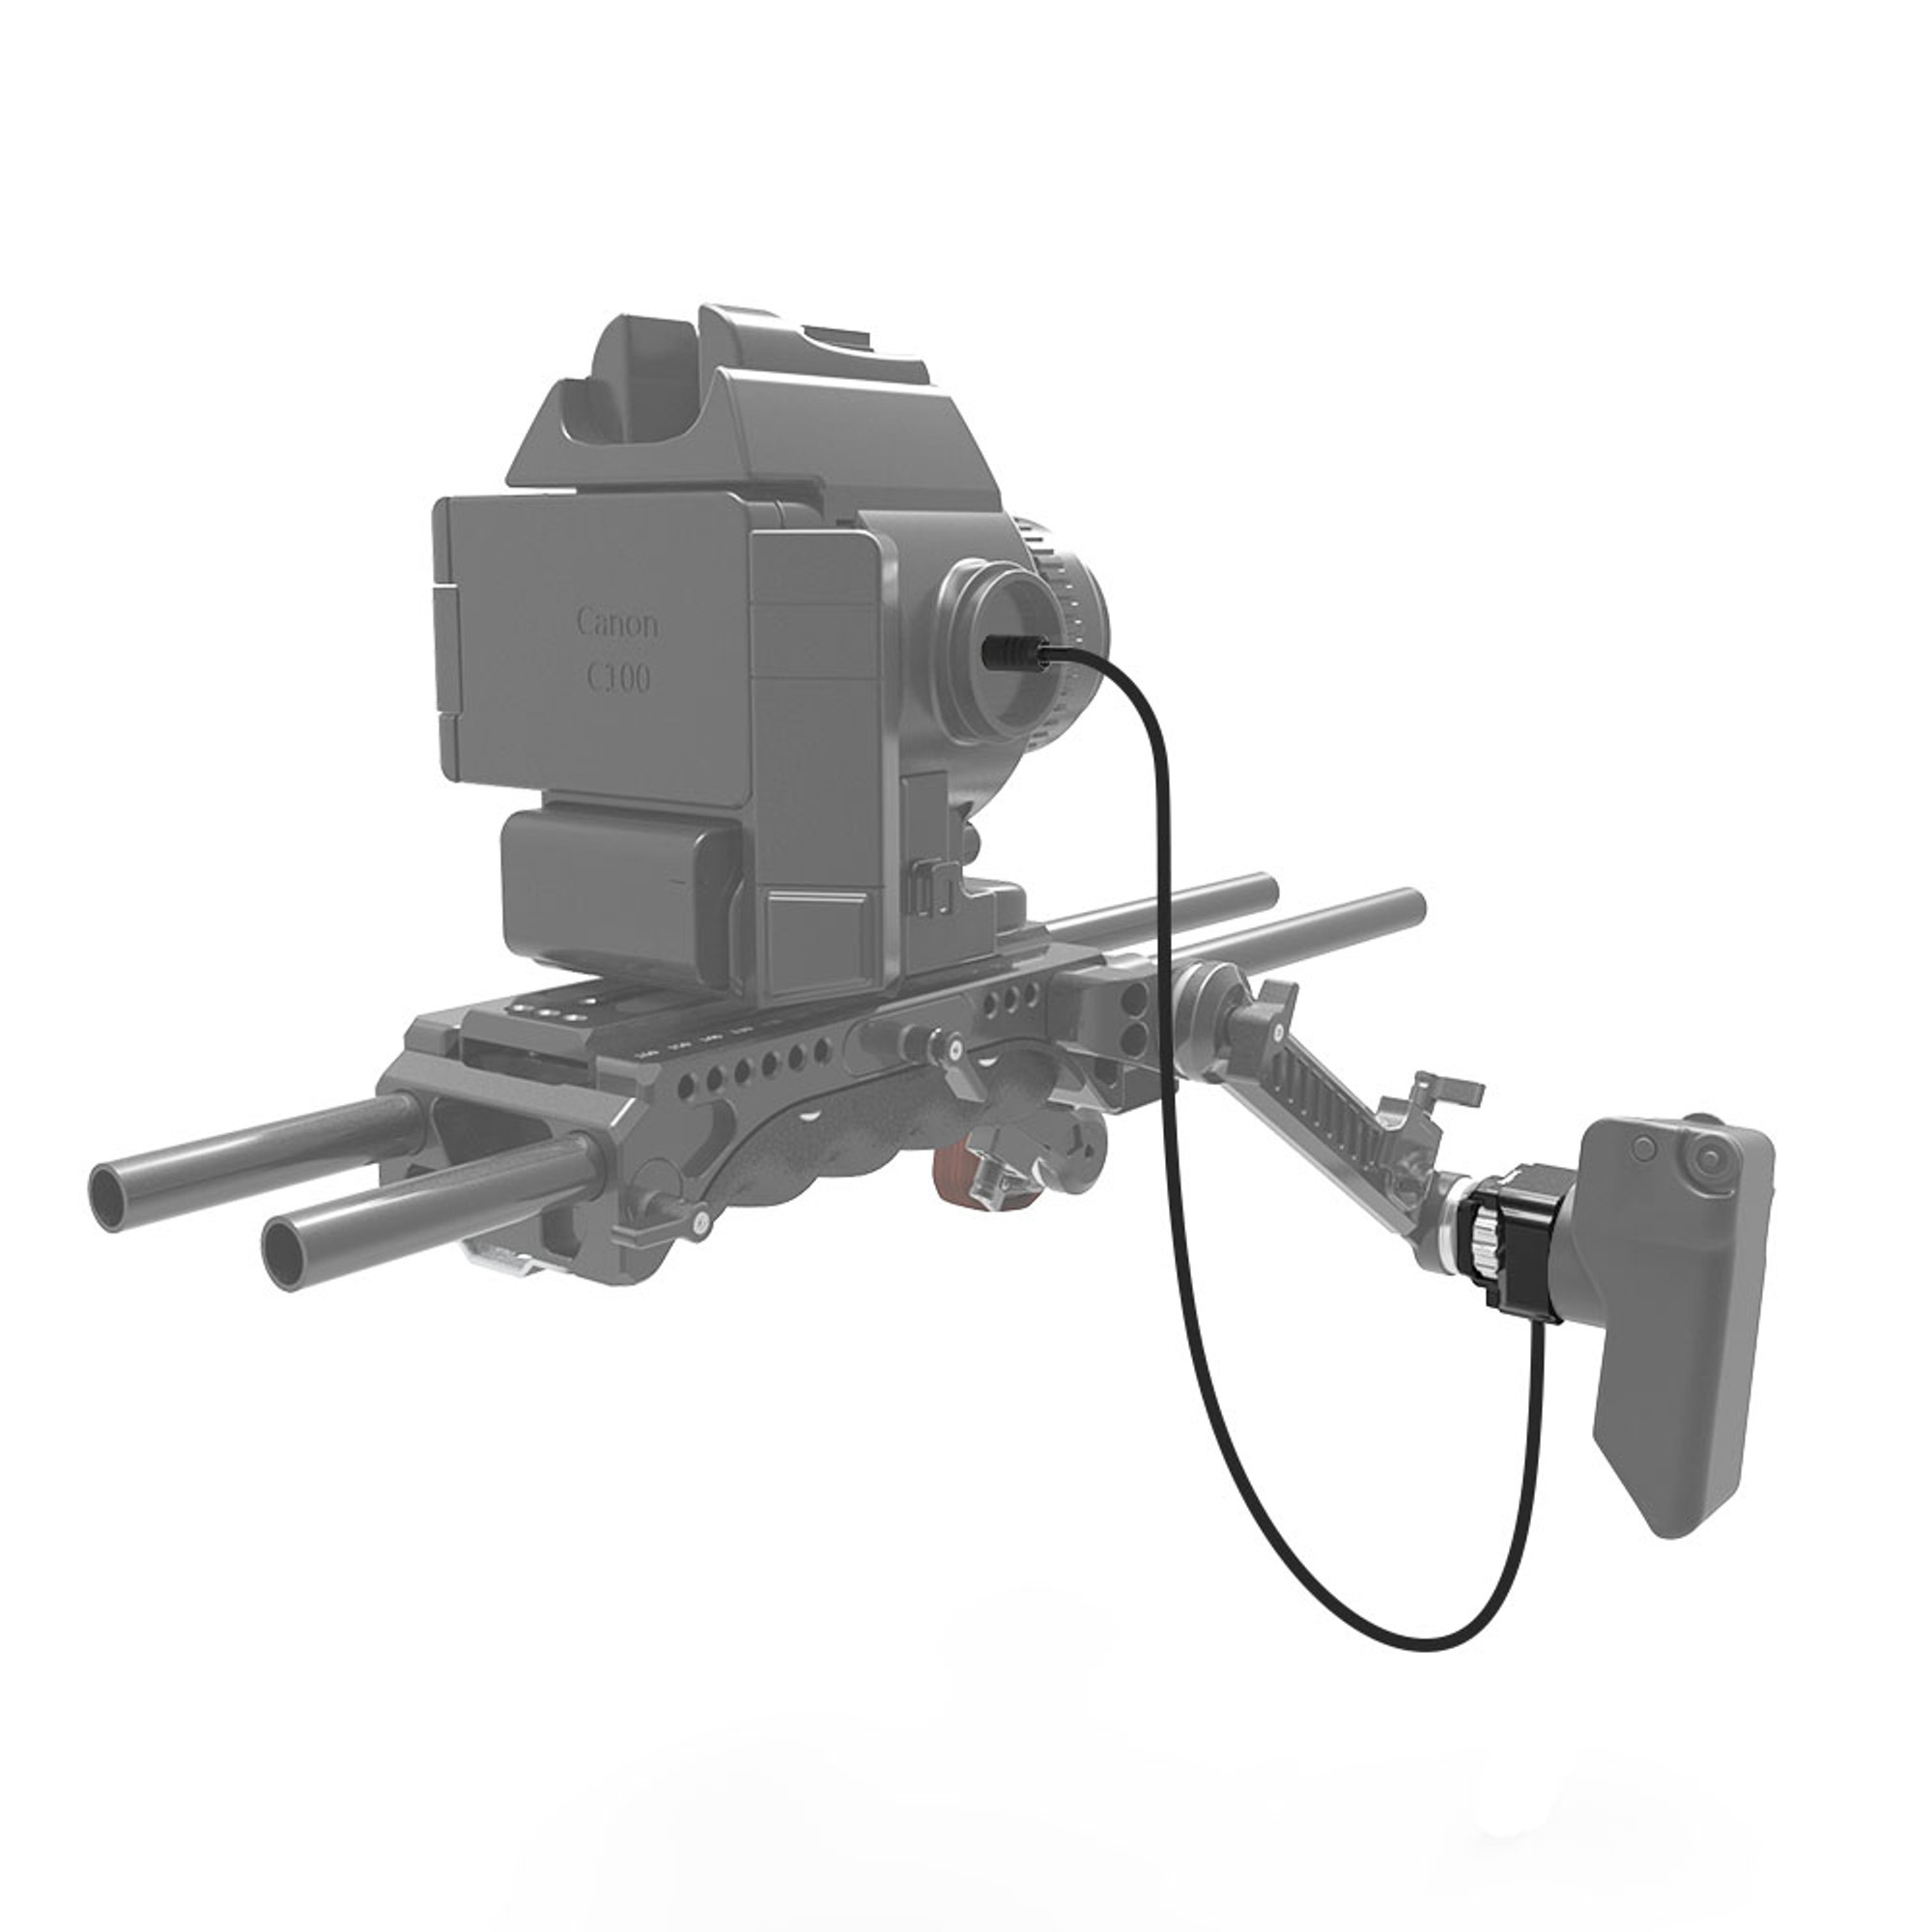 SmallRig Grip Relocator with ARRI Rosette for Canon C100